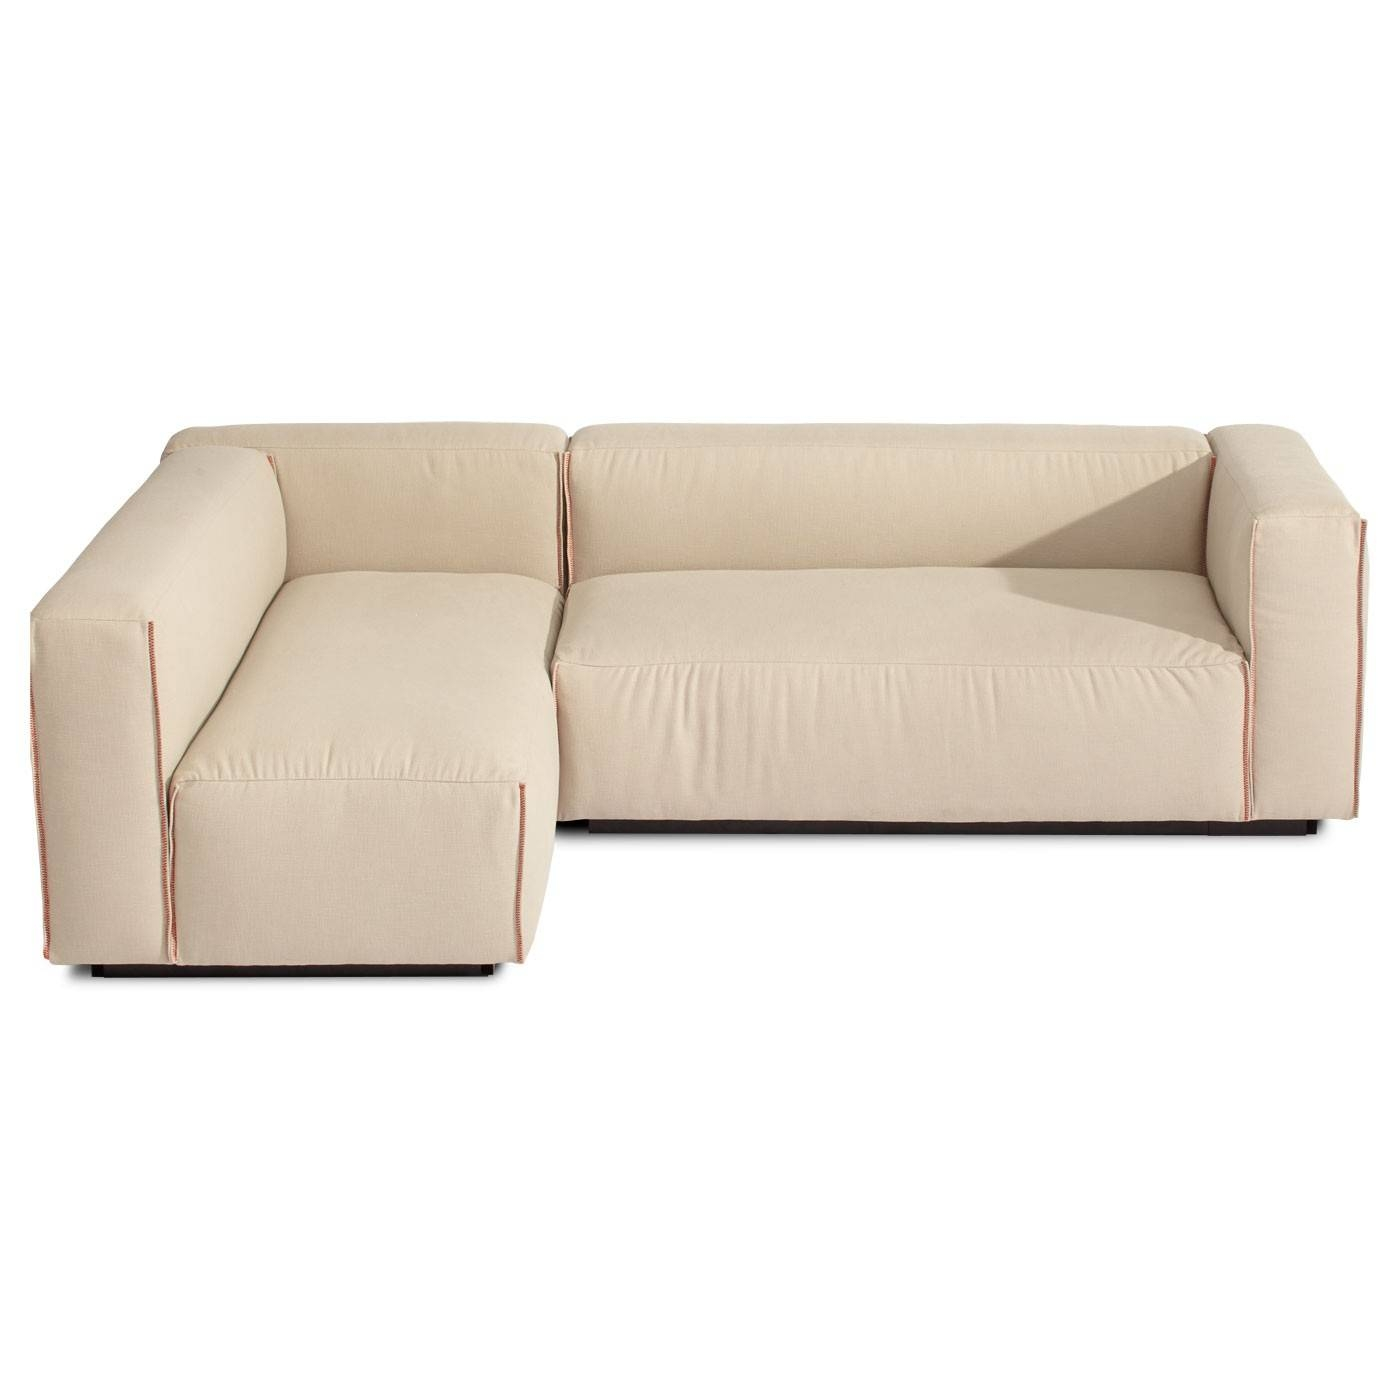 Small Armless Sectional Sofas.small Sleeper Sofa - S3Net intended for Armless Sectional Sofa (Image 25 of 30)